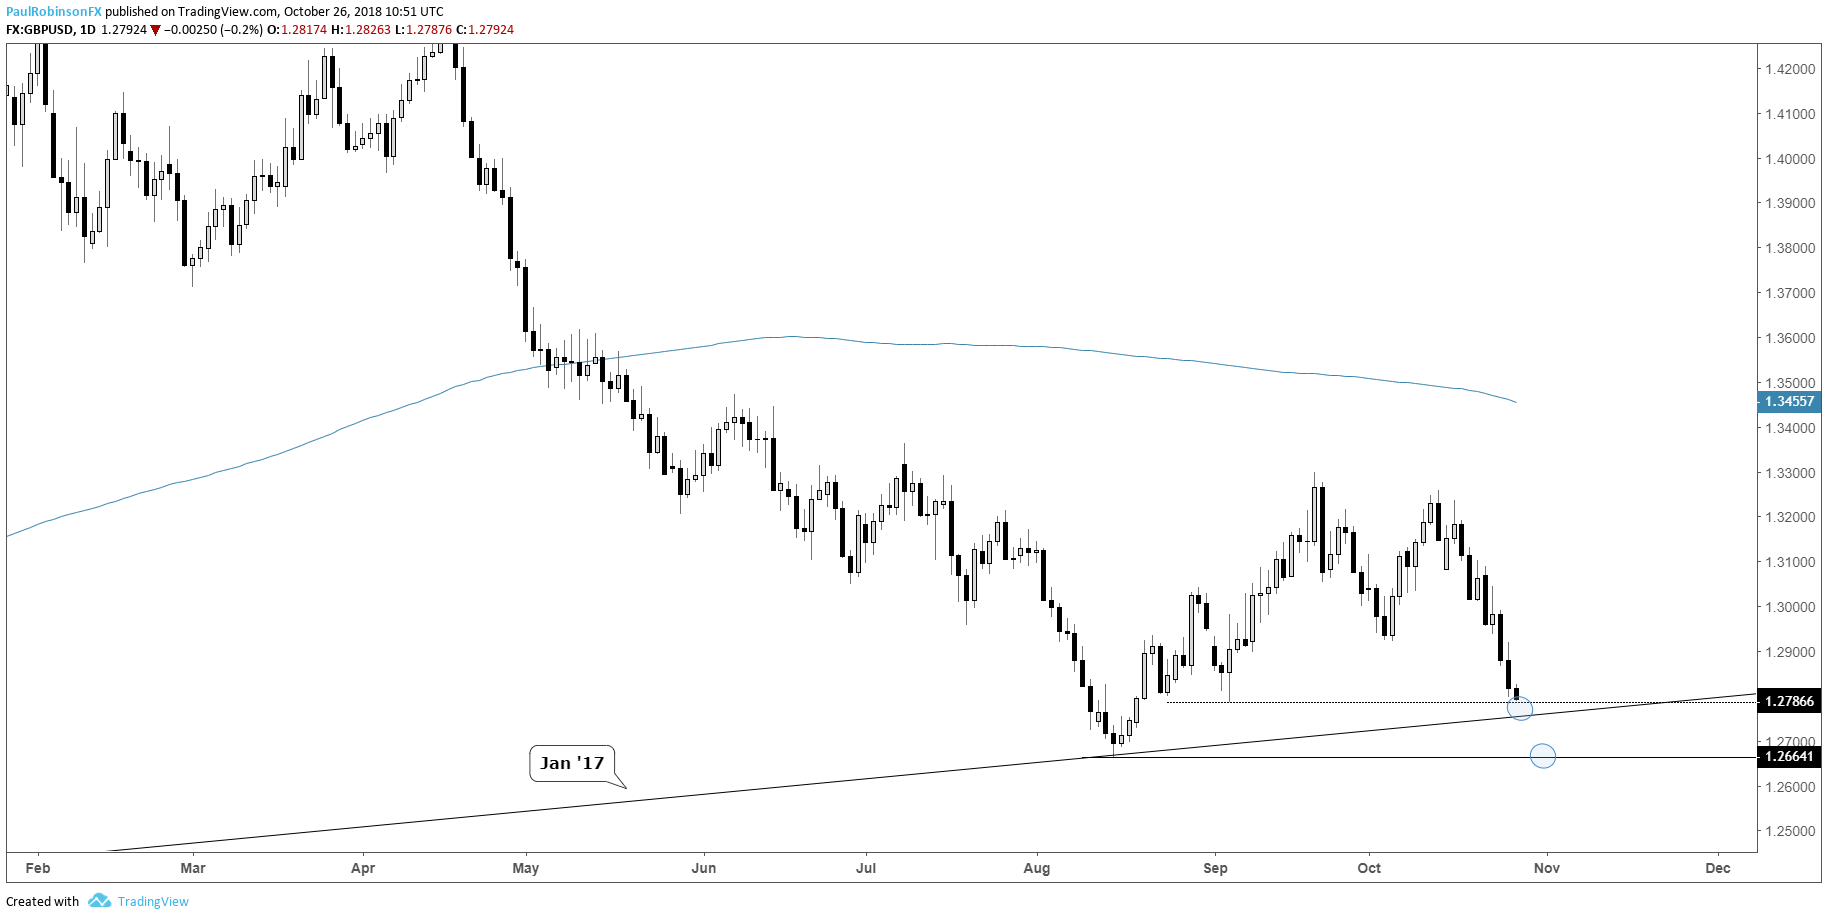 Gbp Usd Daily Chart Trend Line August Low